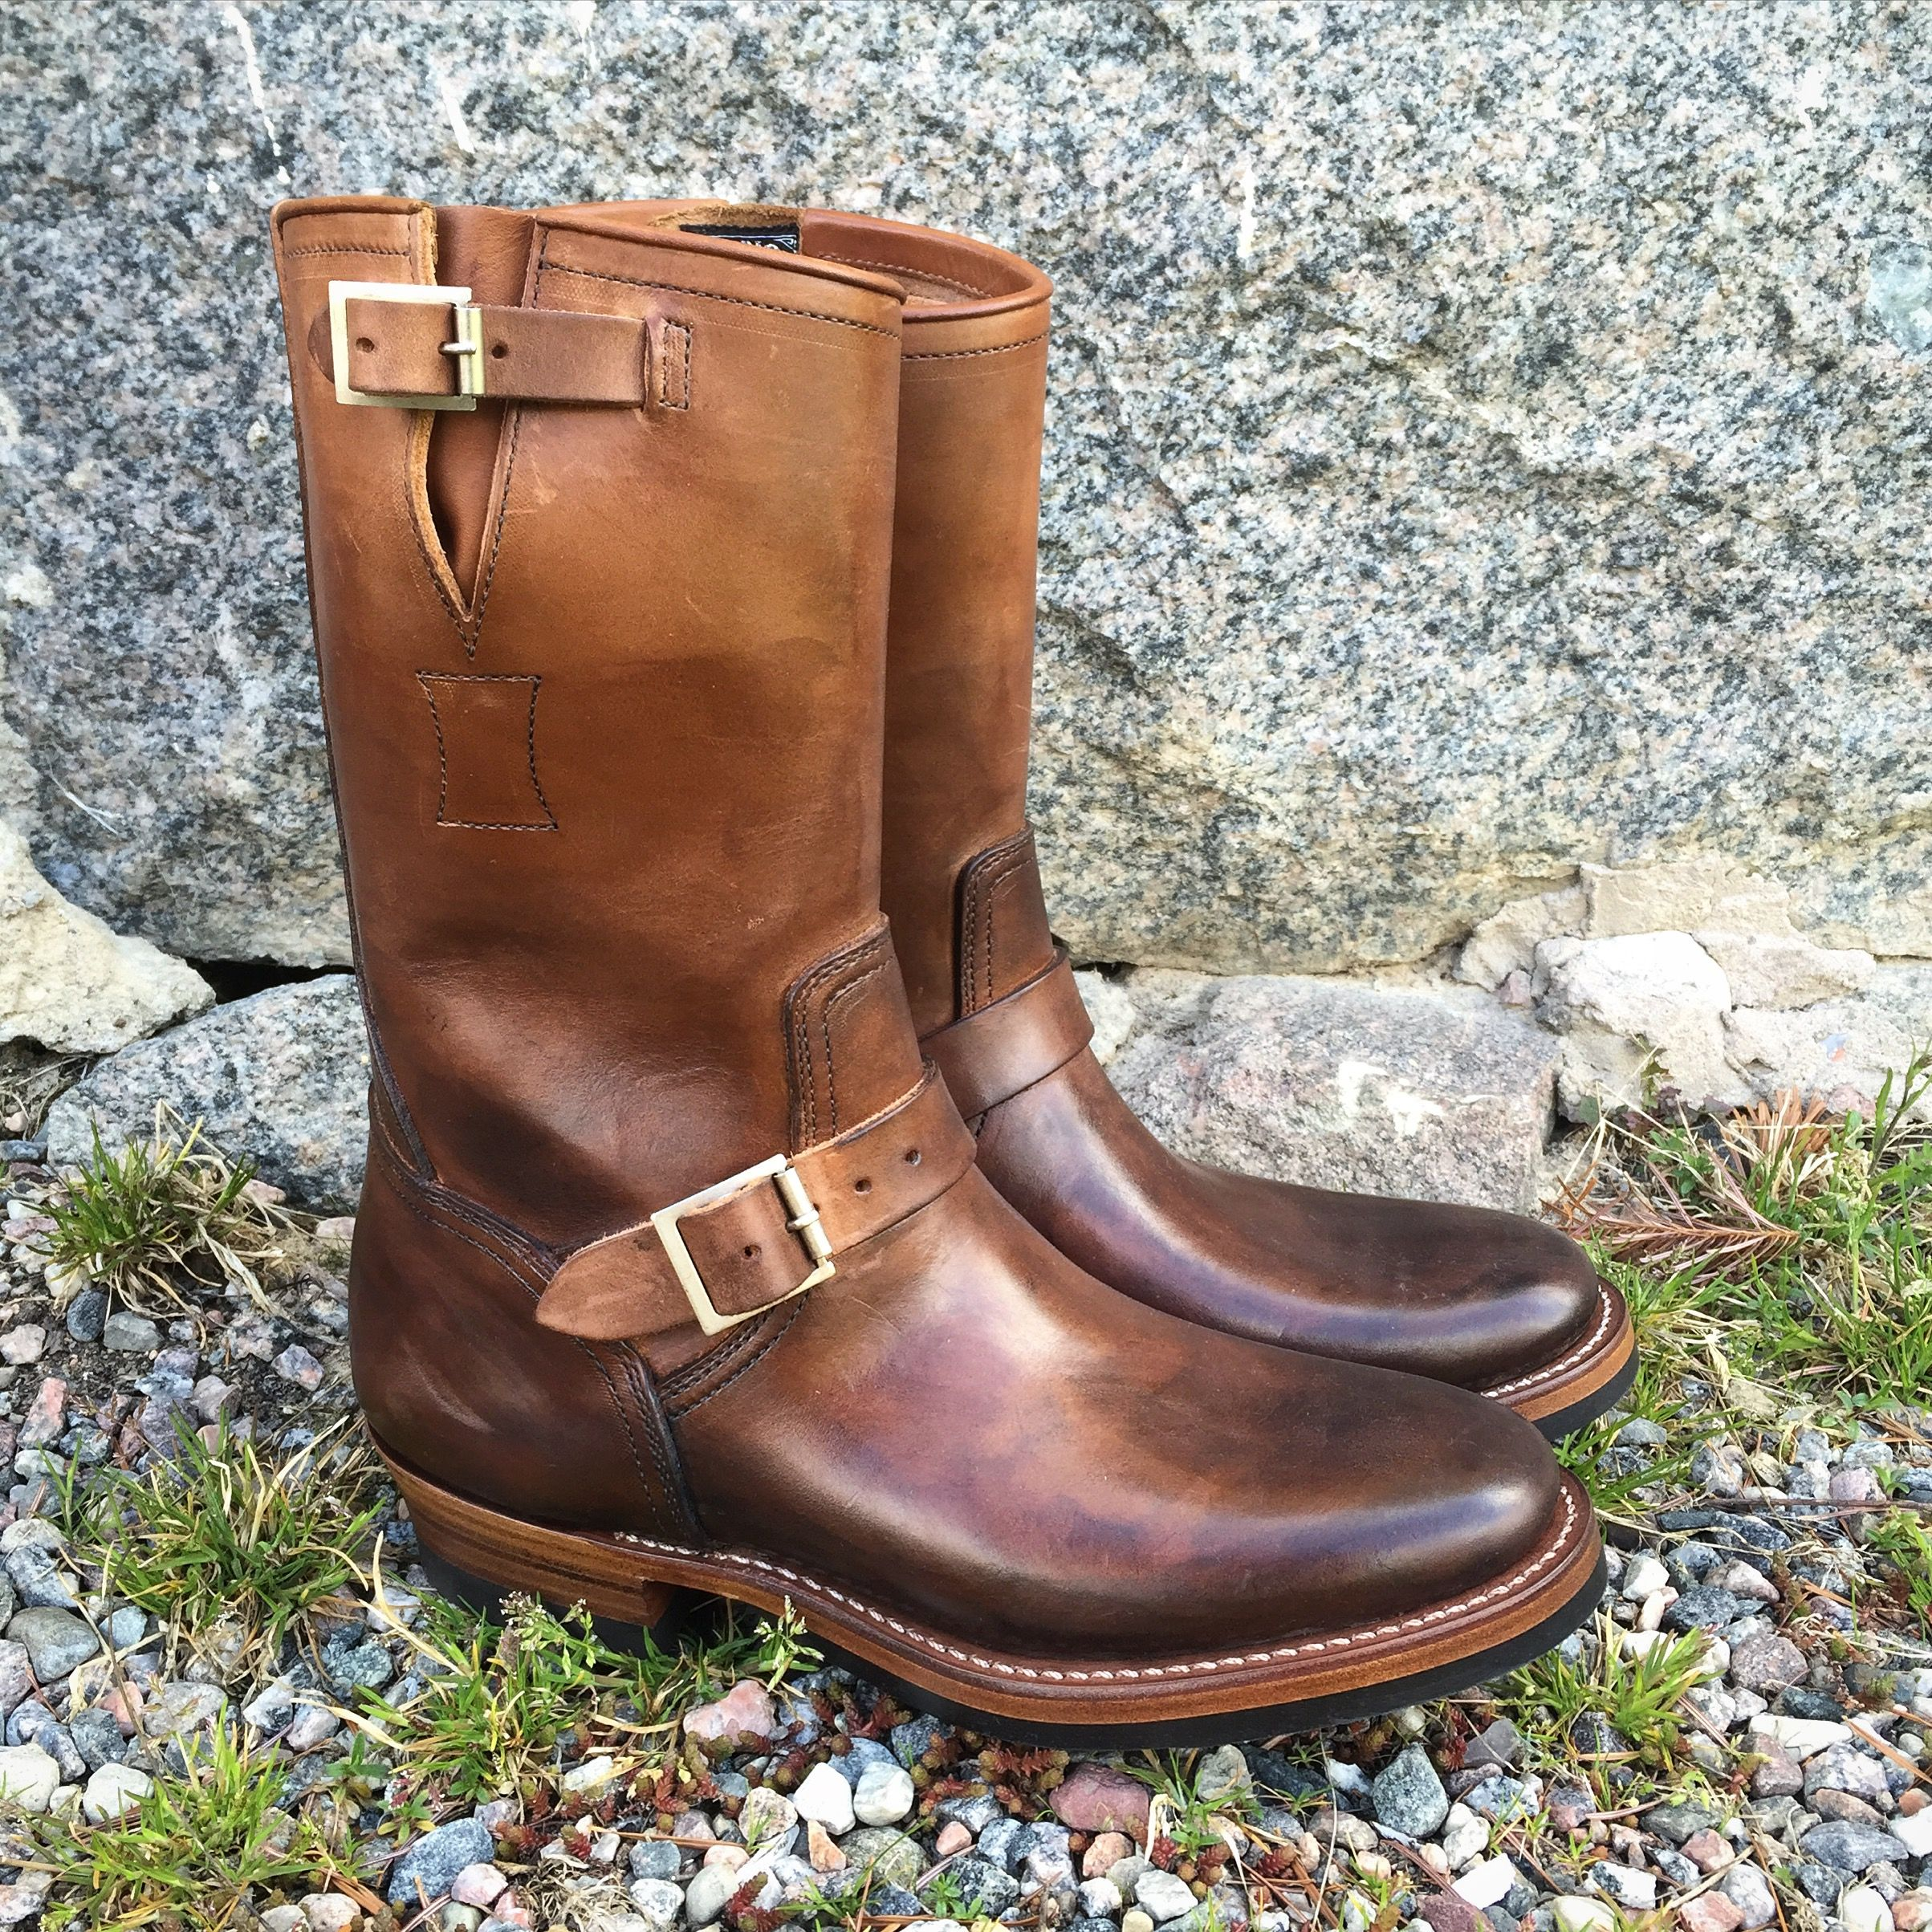 6de2f4a9162 Clinch Engineer Boots, CN Last. (made in japan, brass tokyo ...